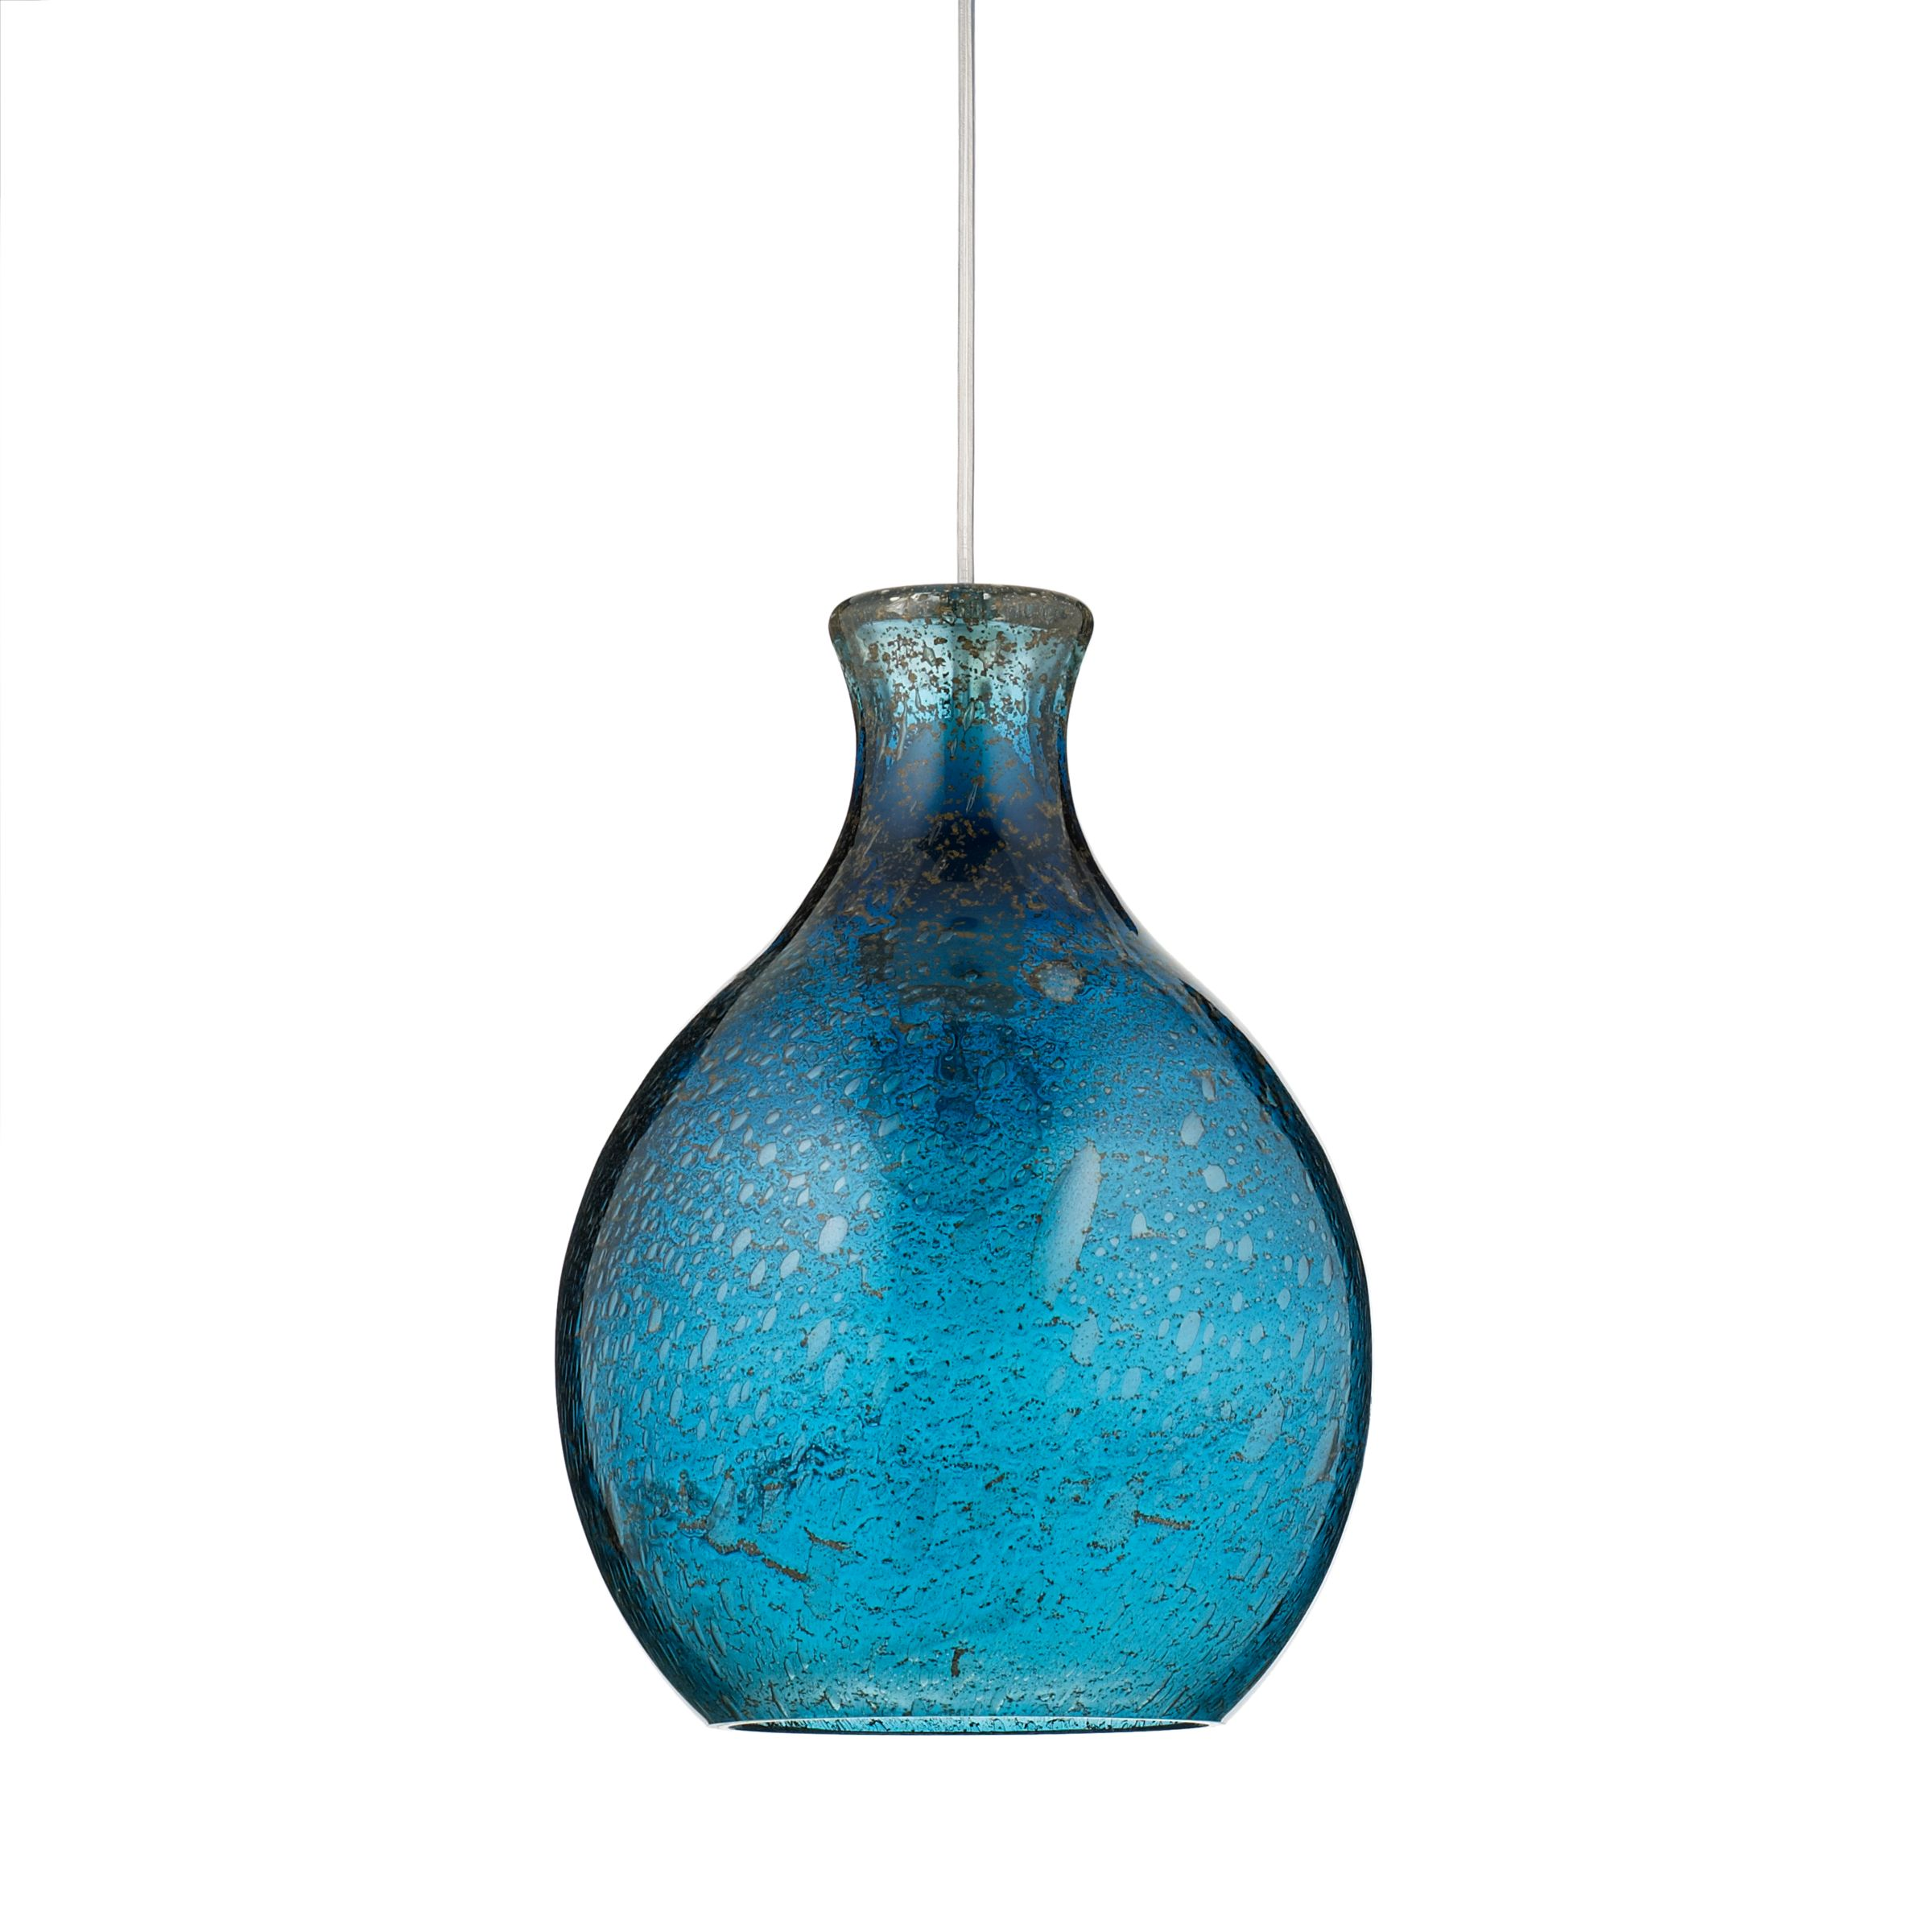 gl vase with lights with John Lewis Brianna Ceiling Light Teal on I Love This Garden Room With These Large Glass further Alleyoop Fused Glass Wall Clock additionally Glassstemware together with 5in Gold Glass Cube 2 moreover 24003 Leather Wall Tiles Price.